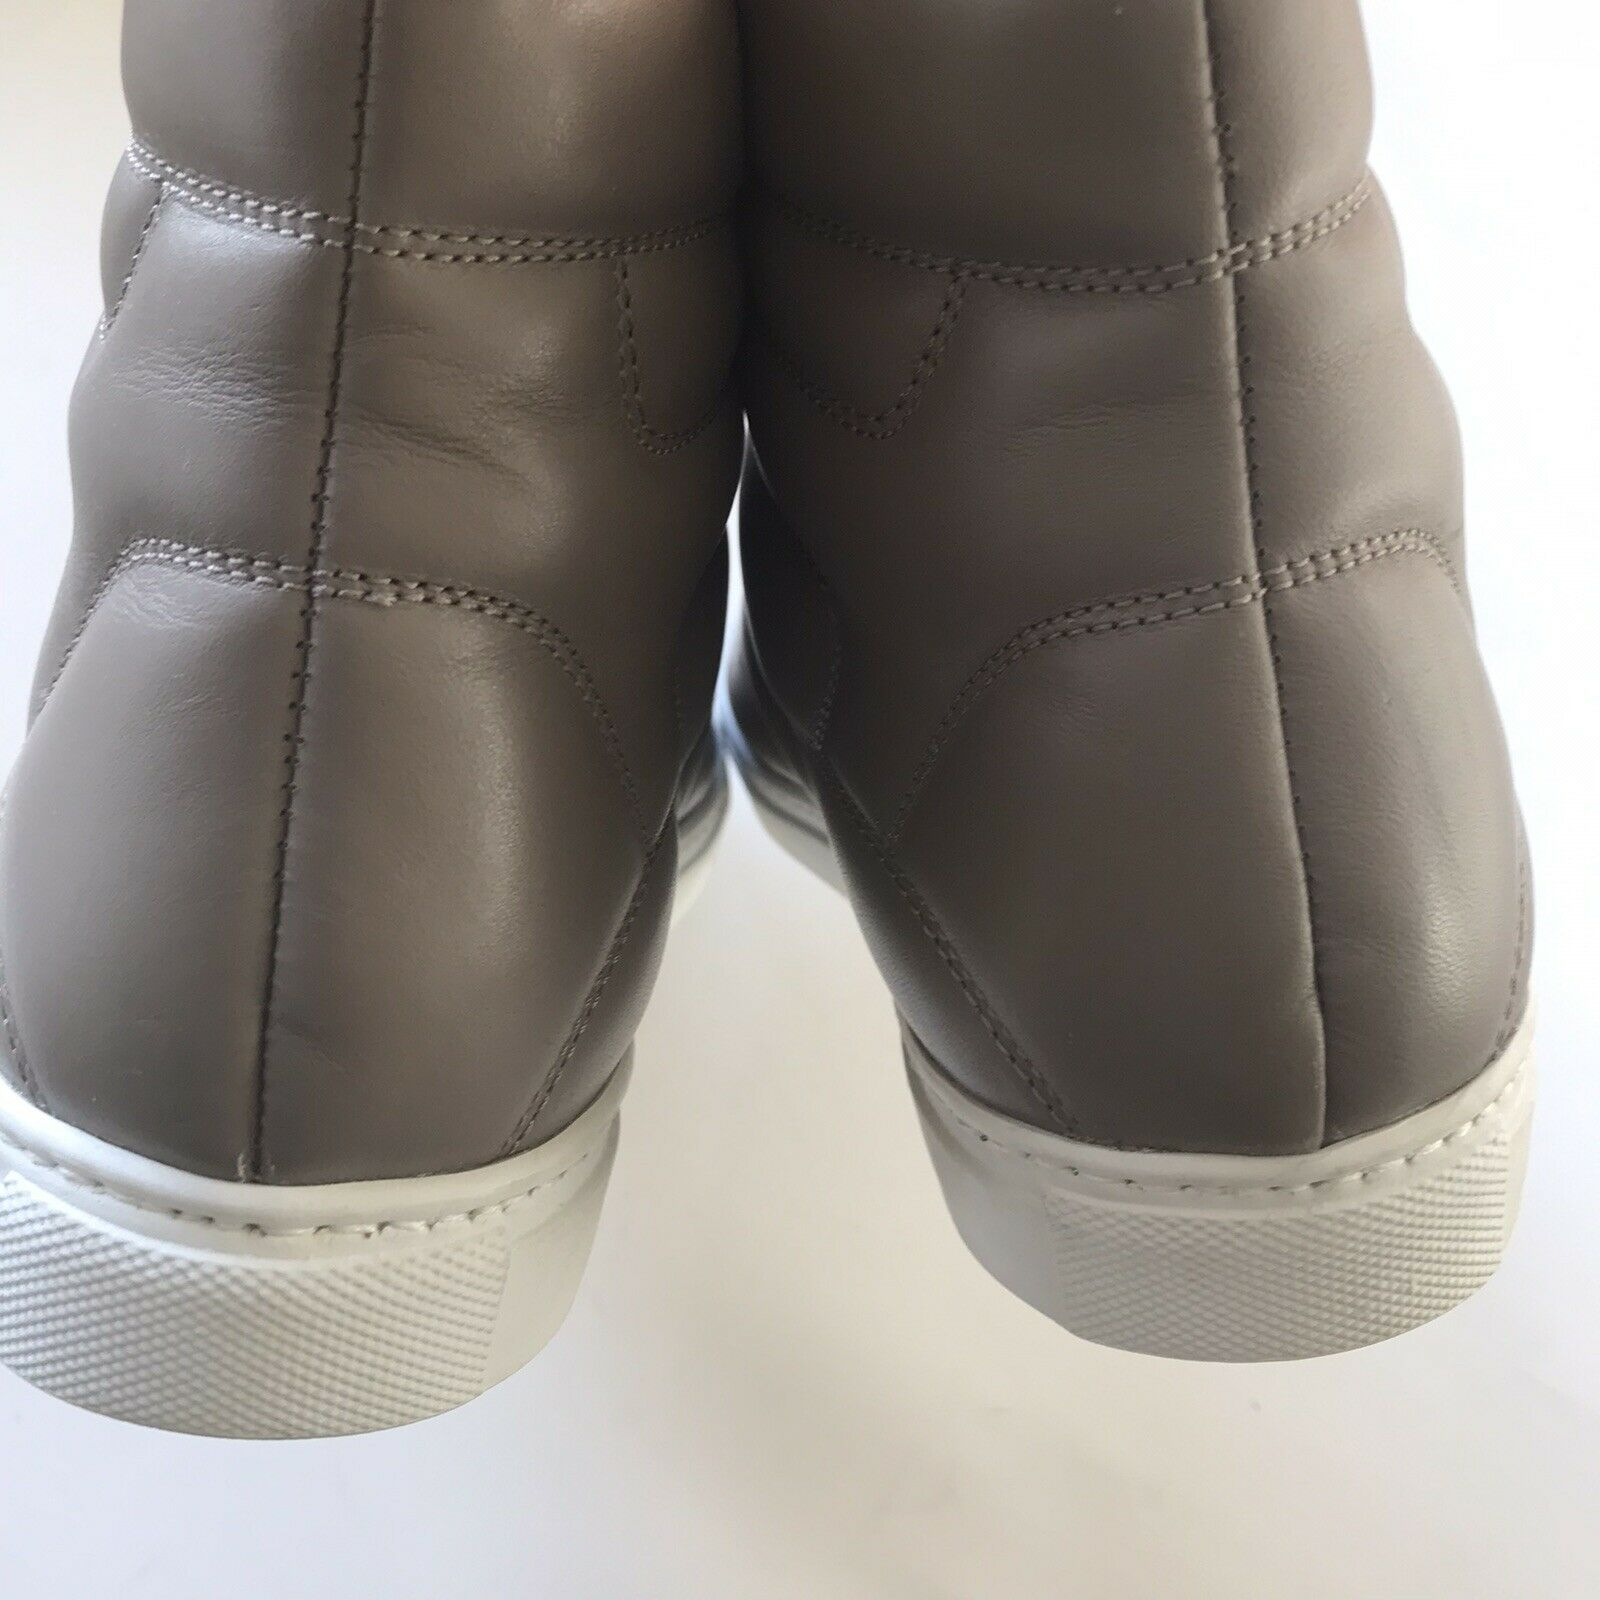 MM6 Martin Margiela Woman's Leather Sneakers Shoe… - image 5